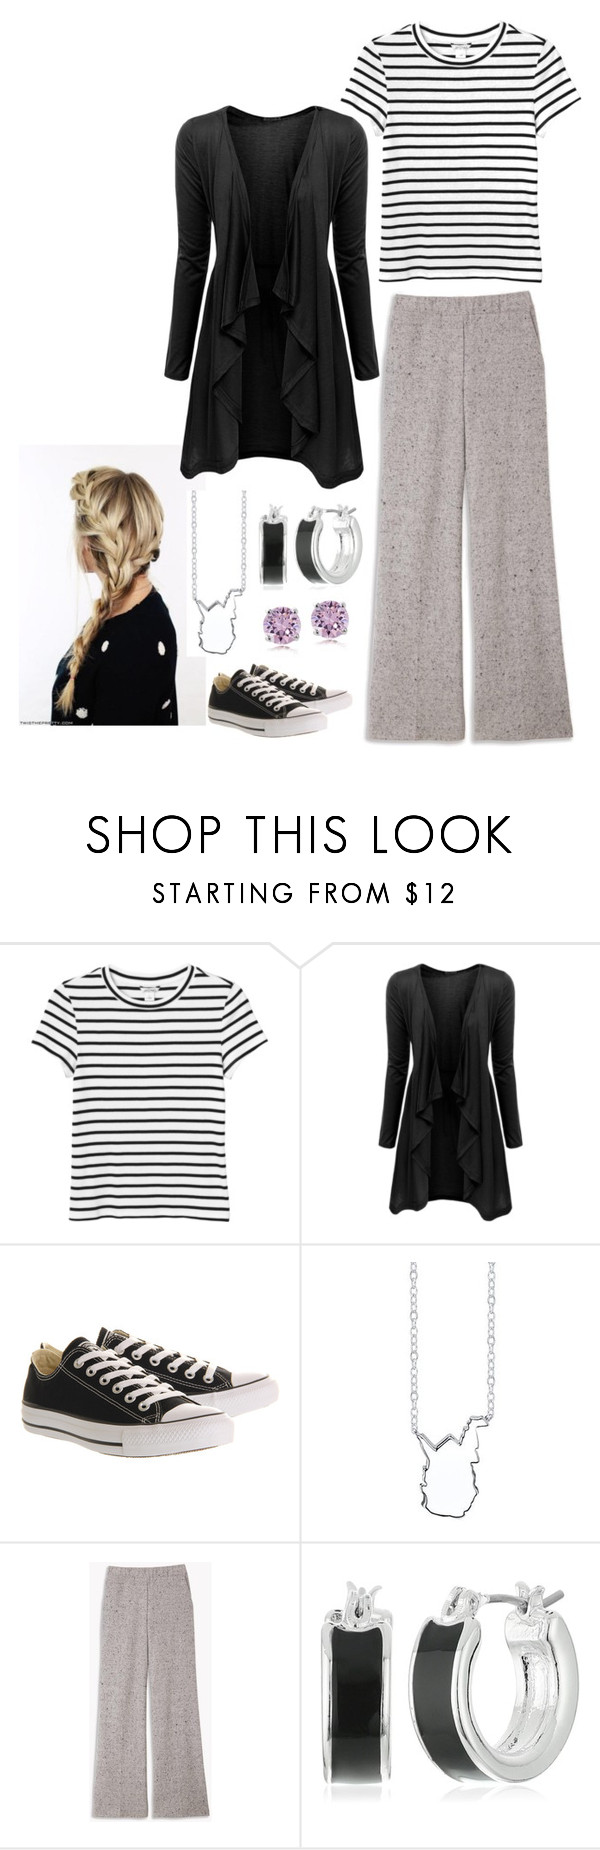 """""""Thursday"""" by mountain-girl-lynn ❤ liked on Polyvore featuring Monki, Doublju, Converse, Bridge Jewelry and Napier"""